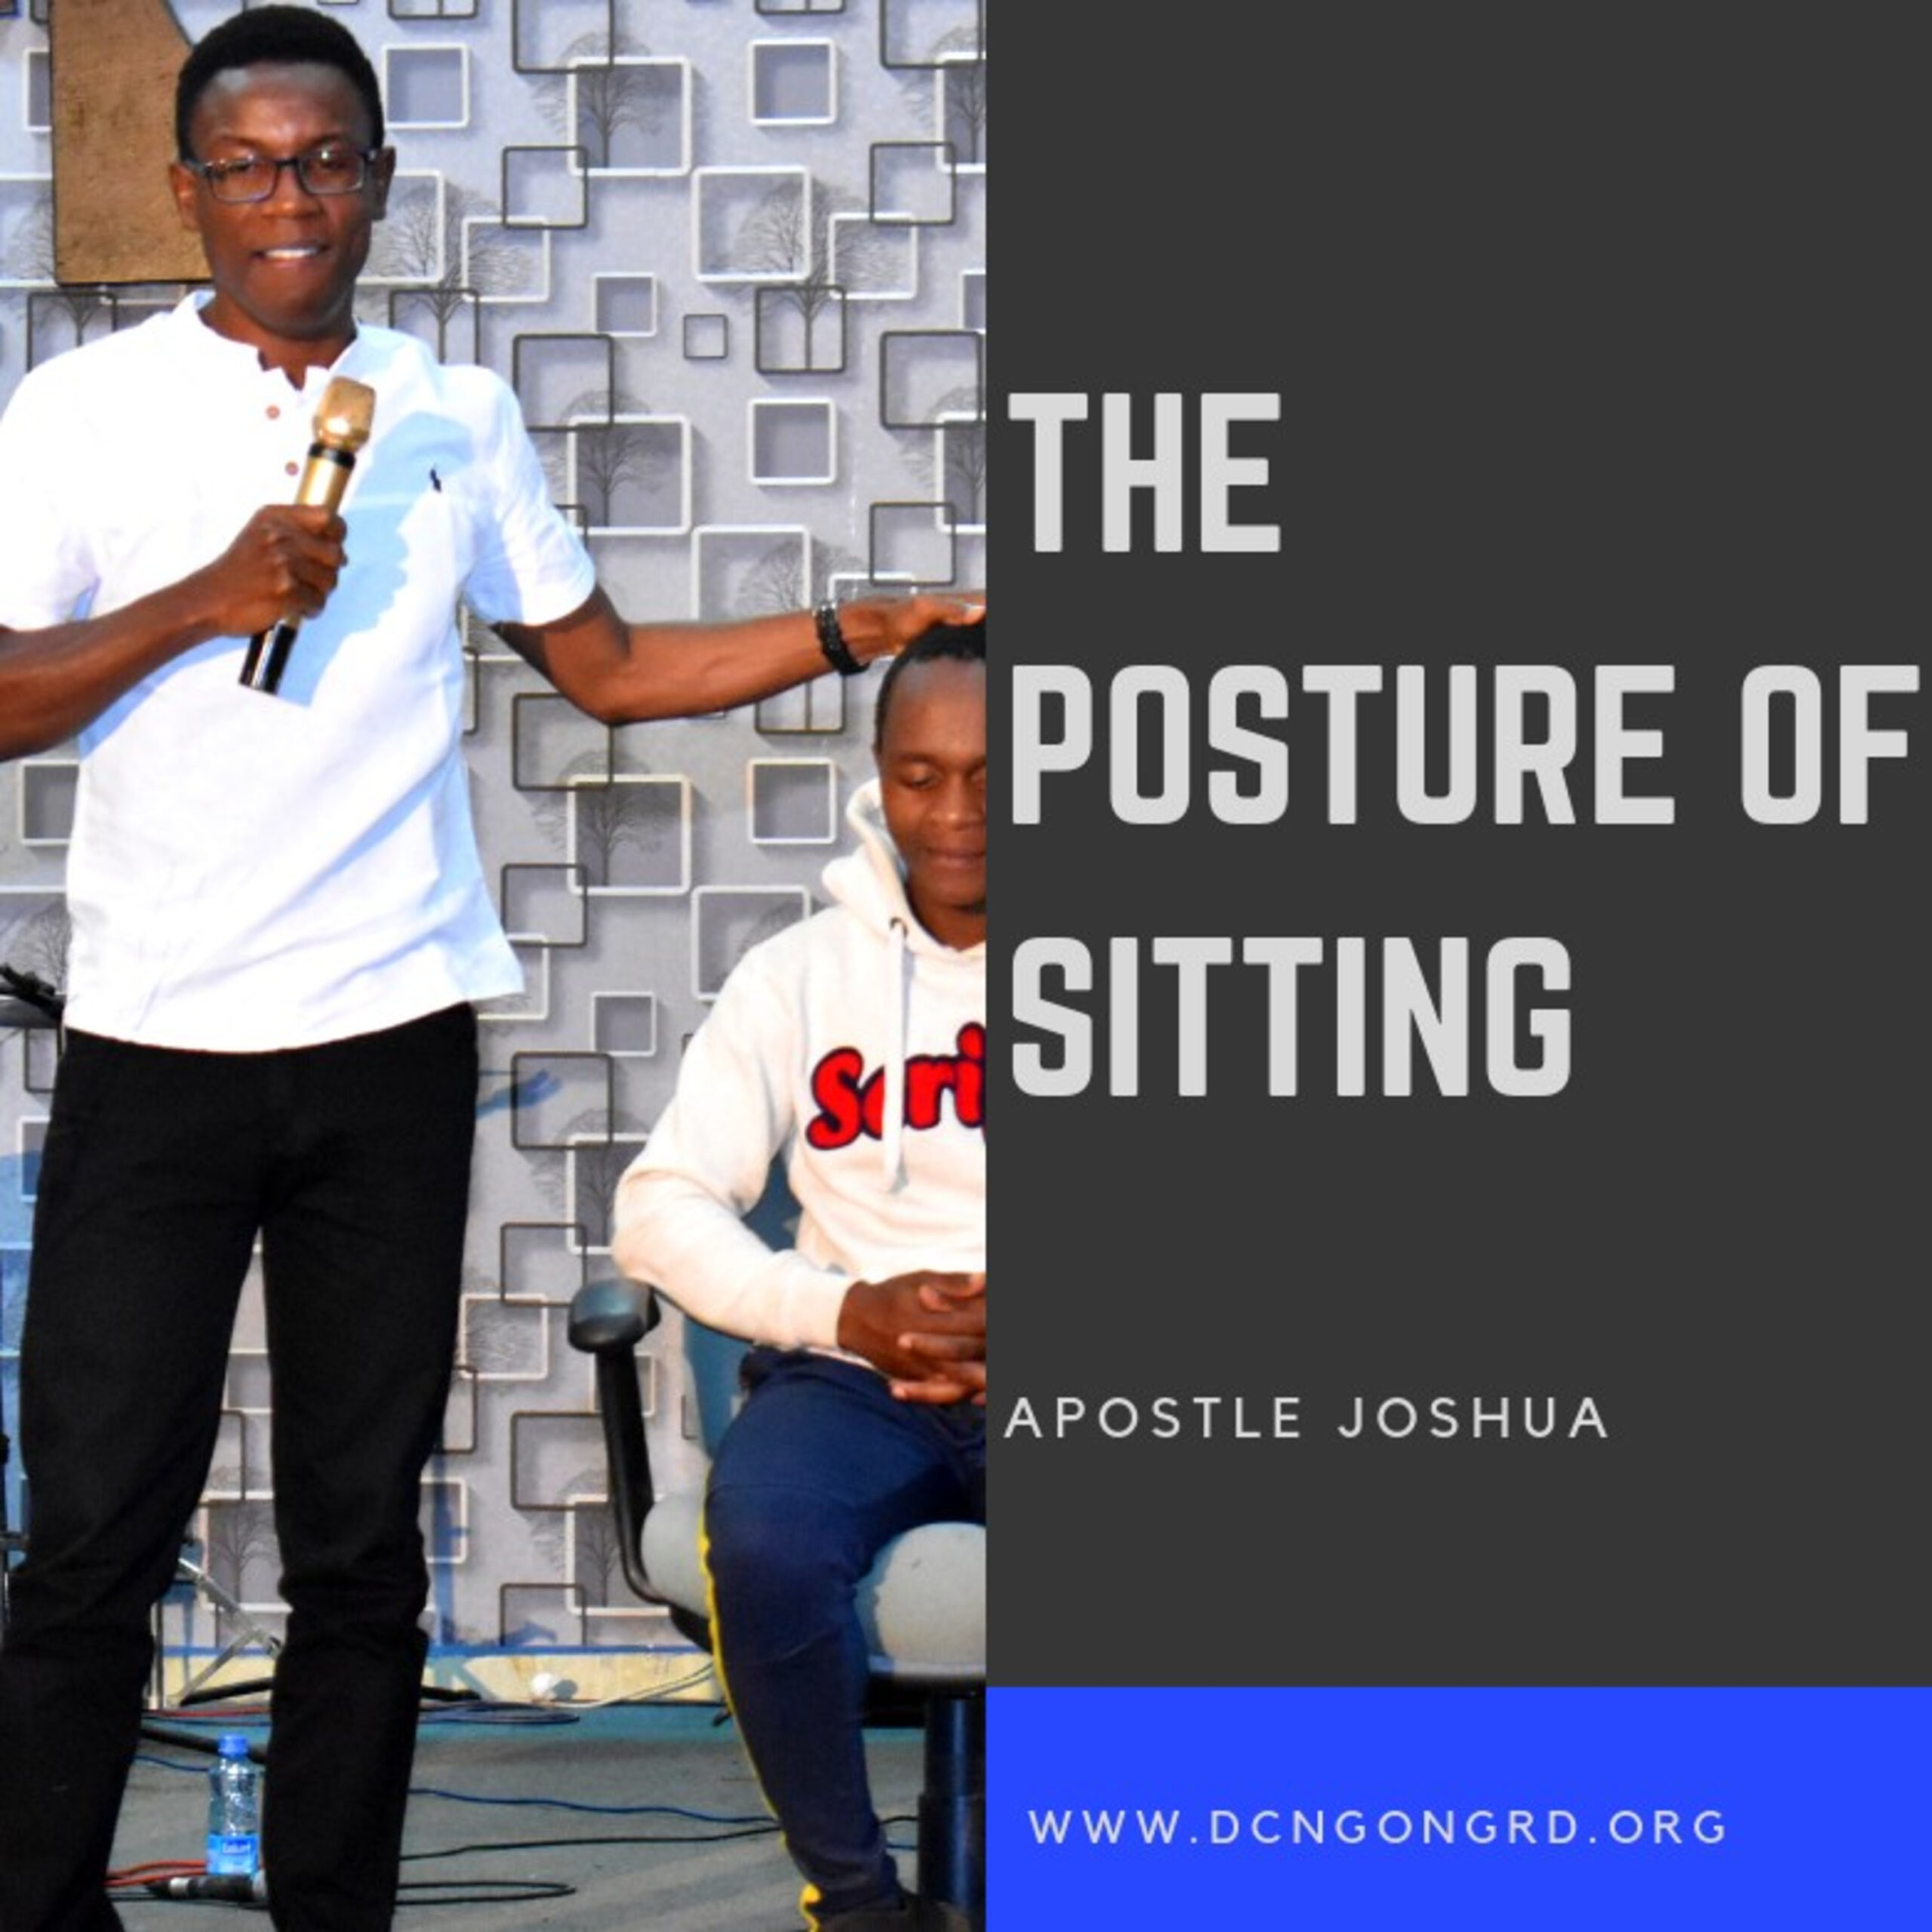 The Pattern of the Cross - The Posture of Sitting